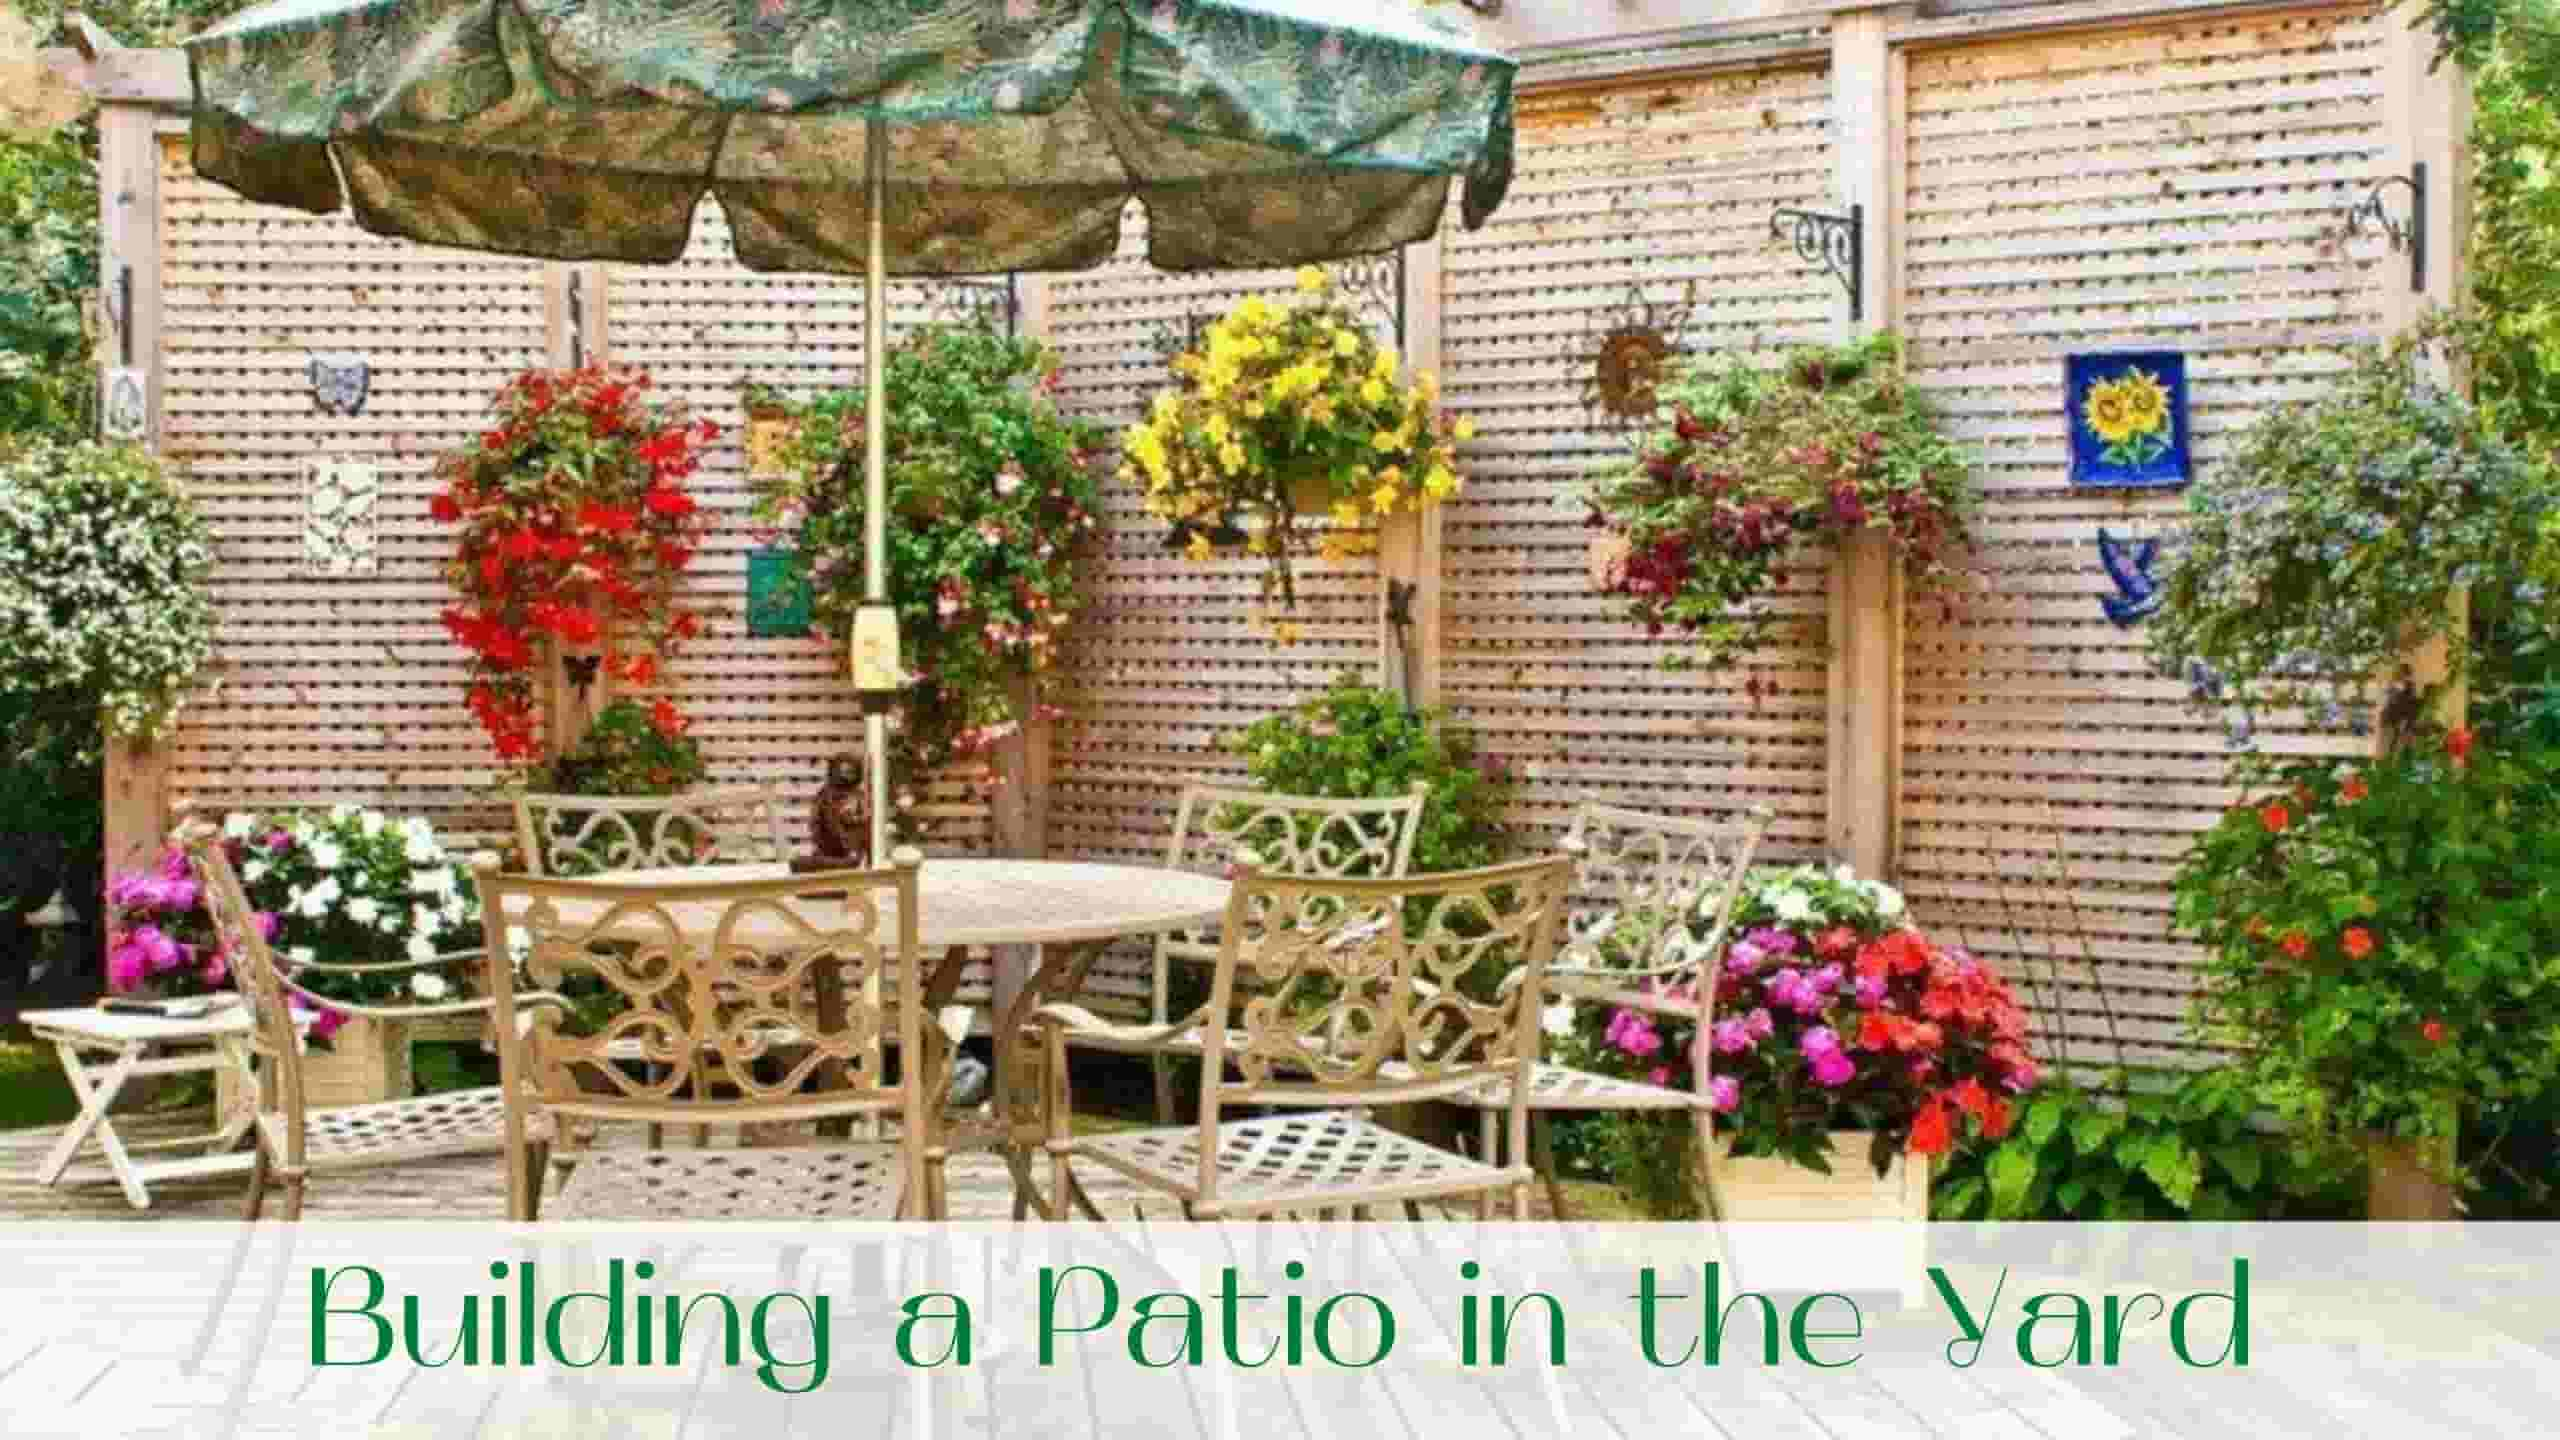 image-building-a-patio-in-the-yard